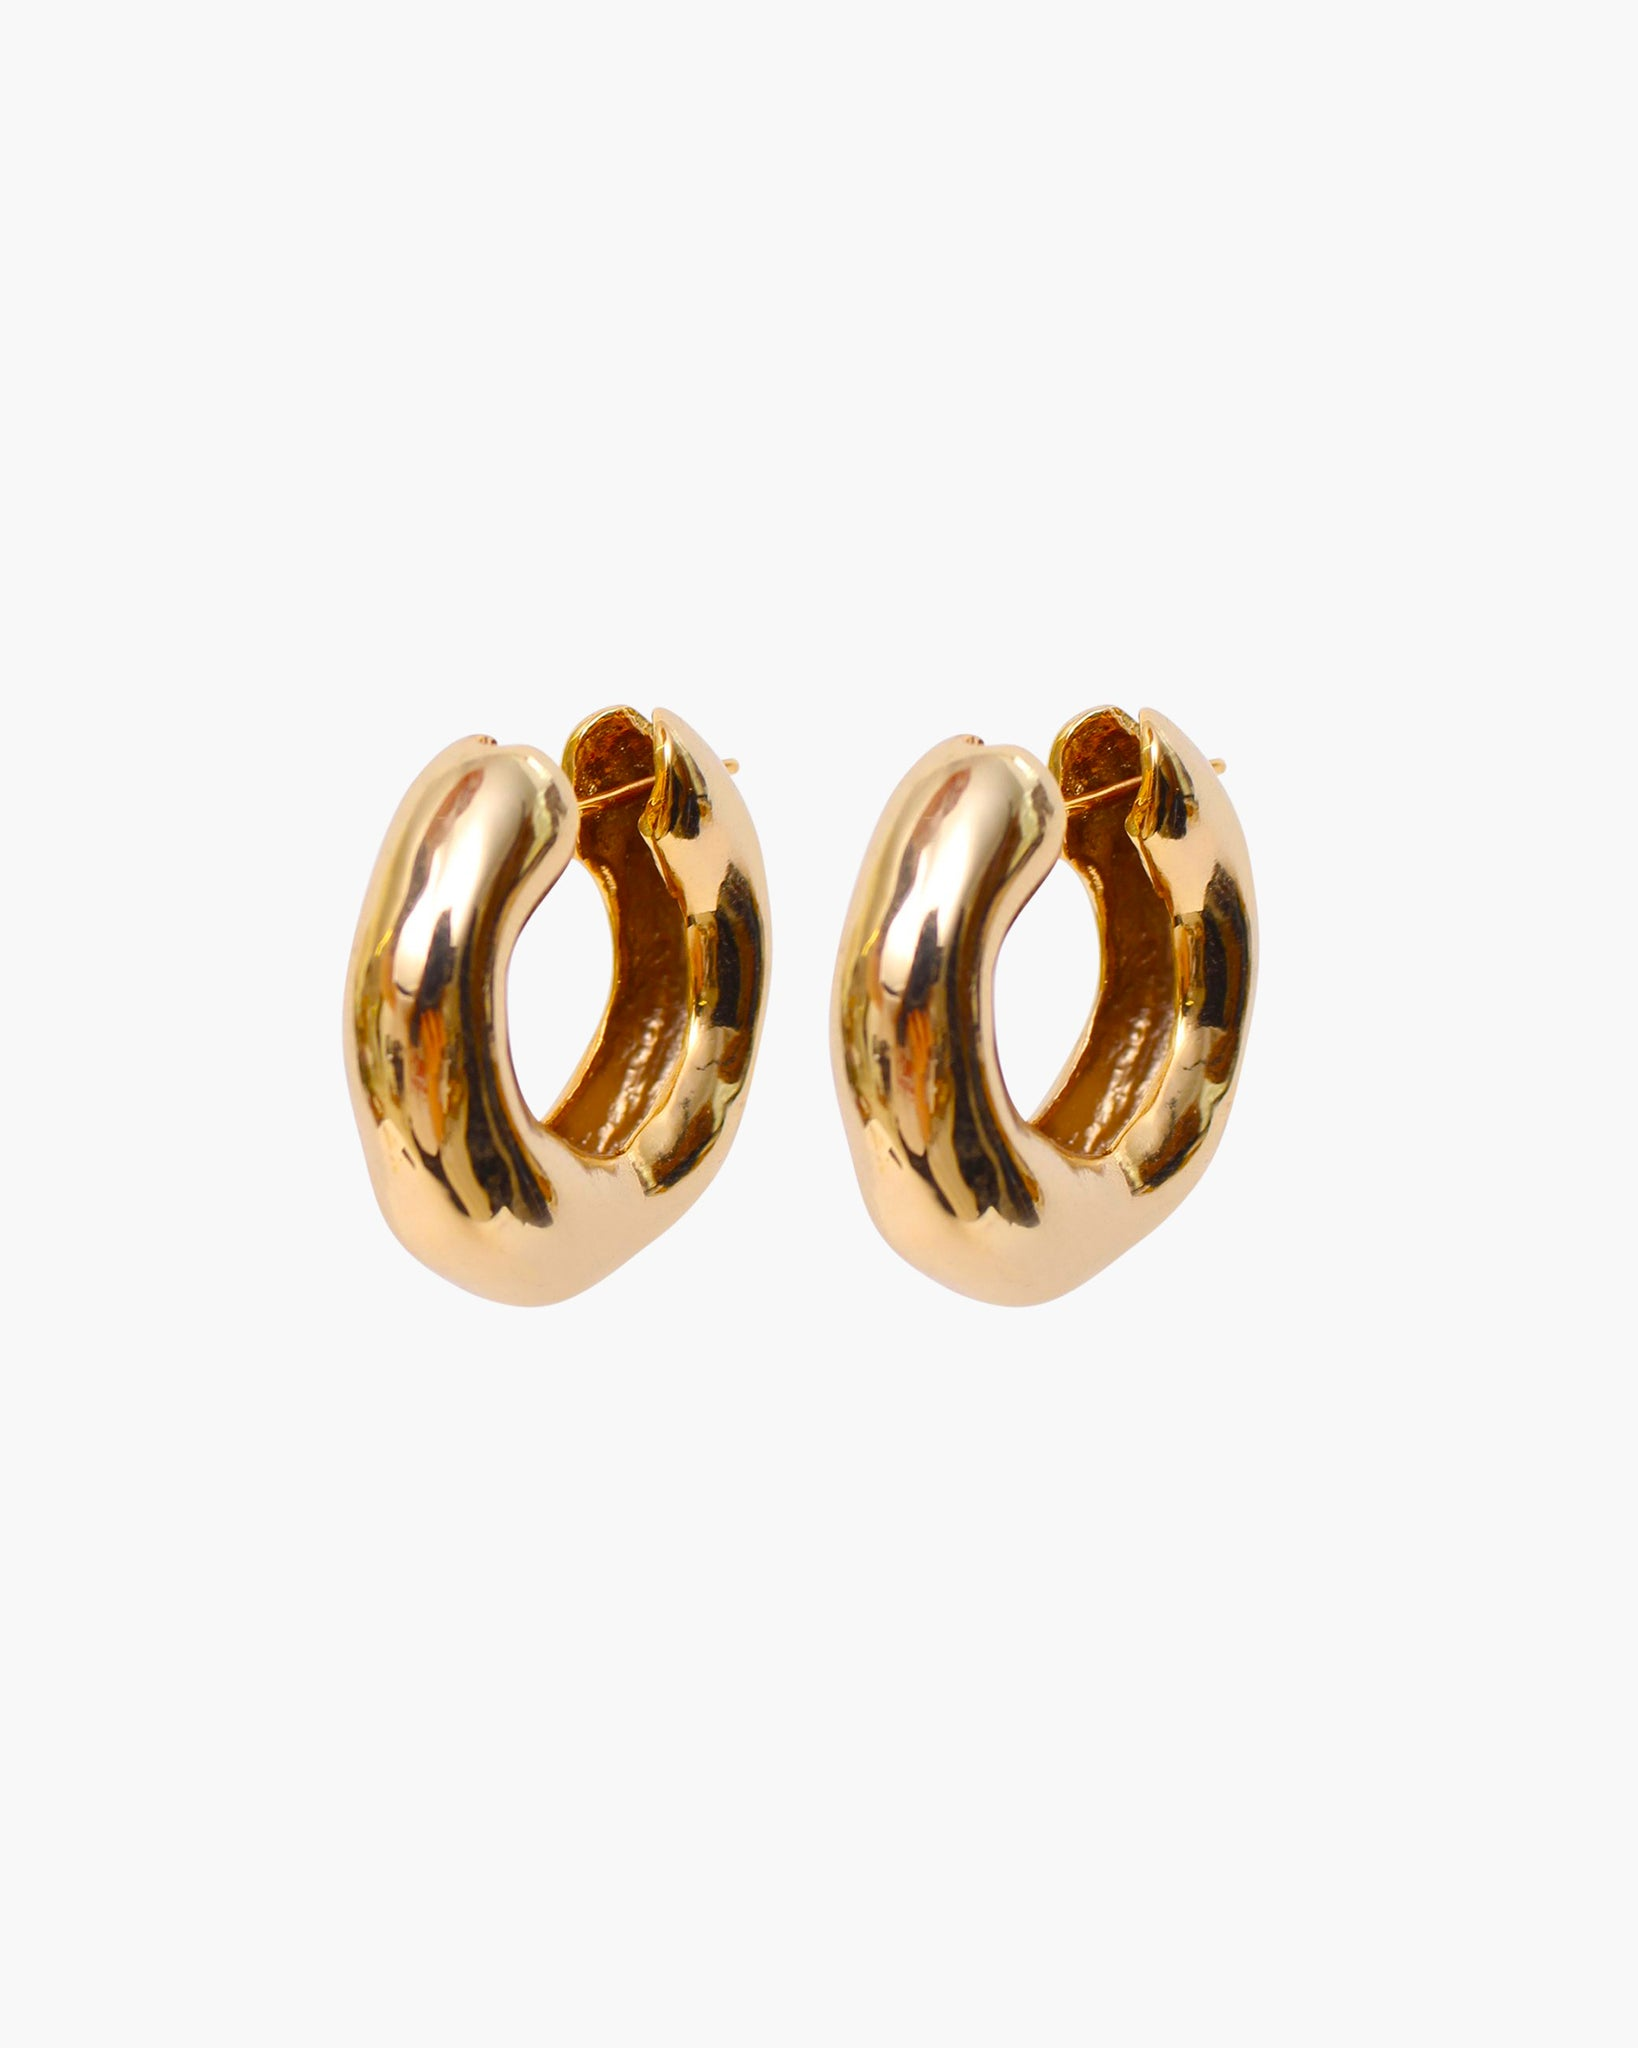 Rowan Hoops Medium Gold Plated 18k